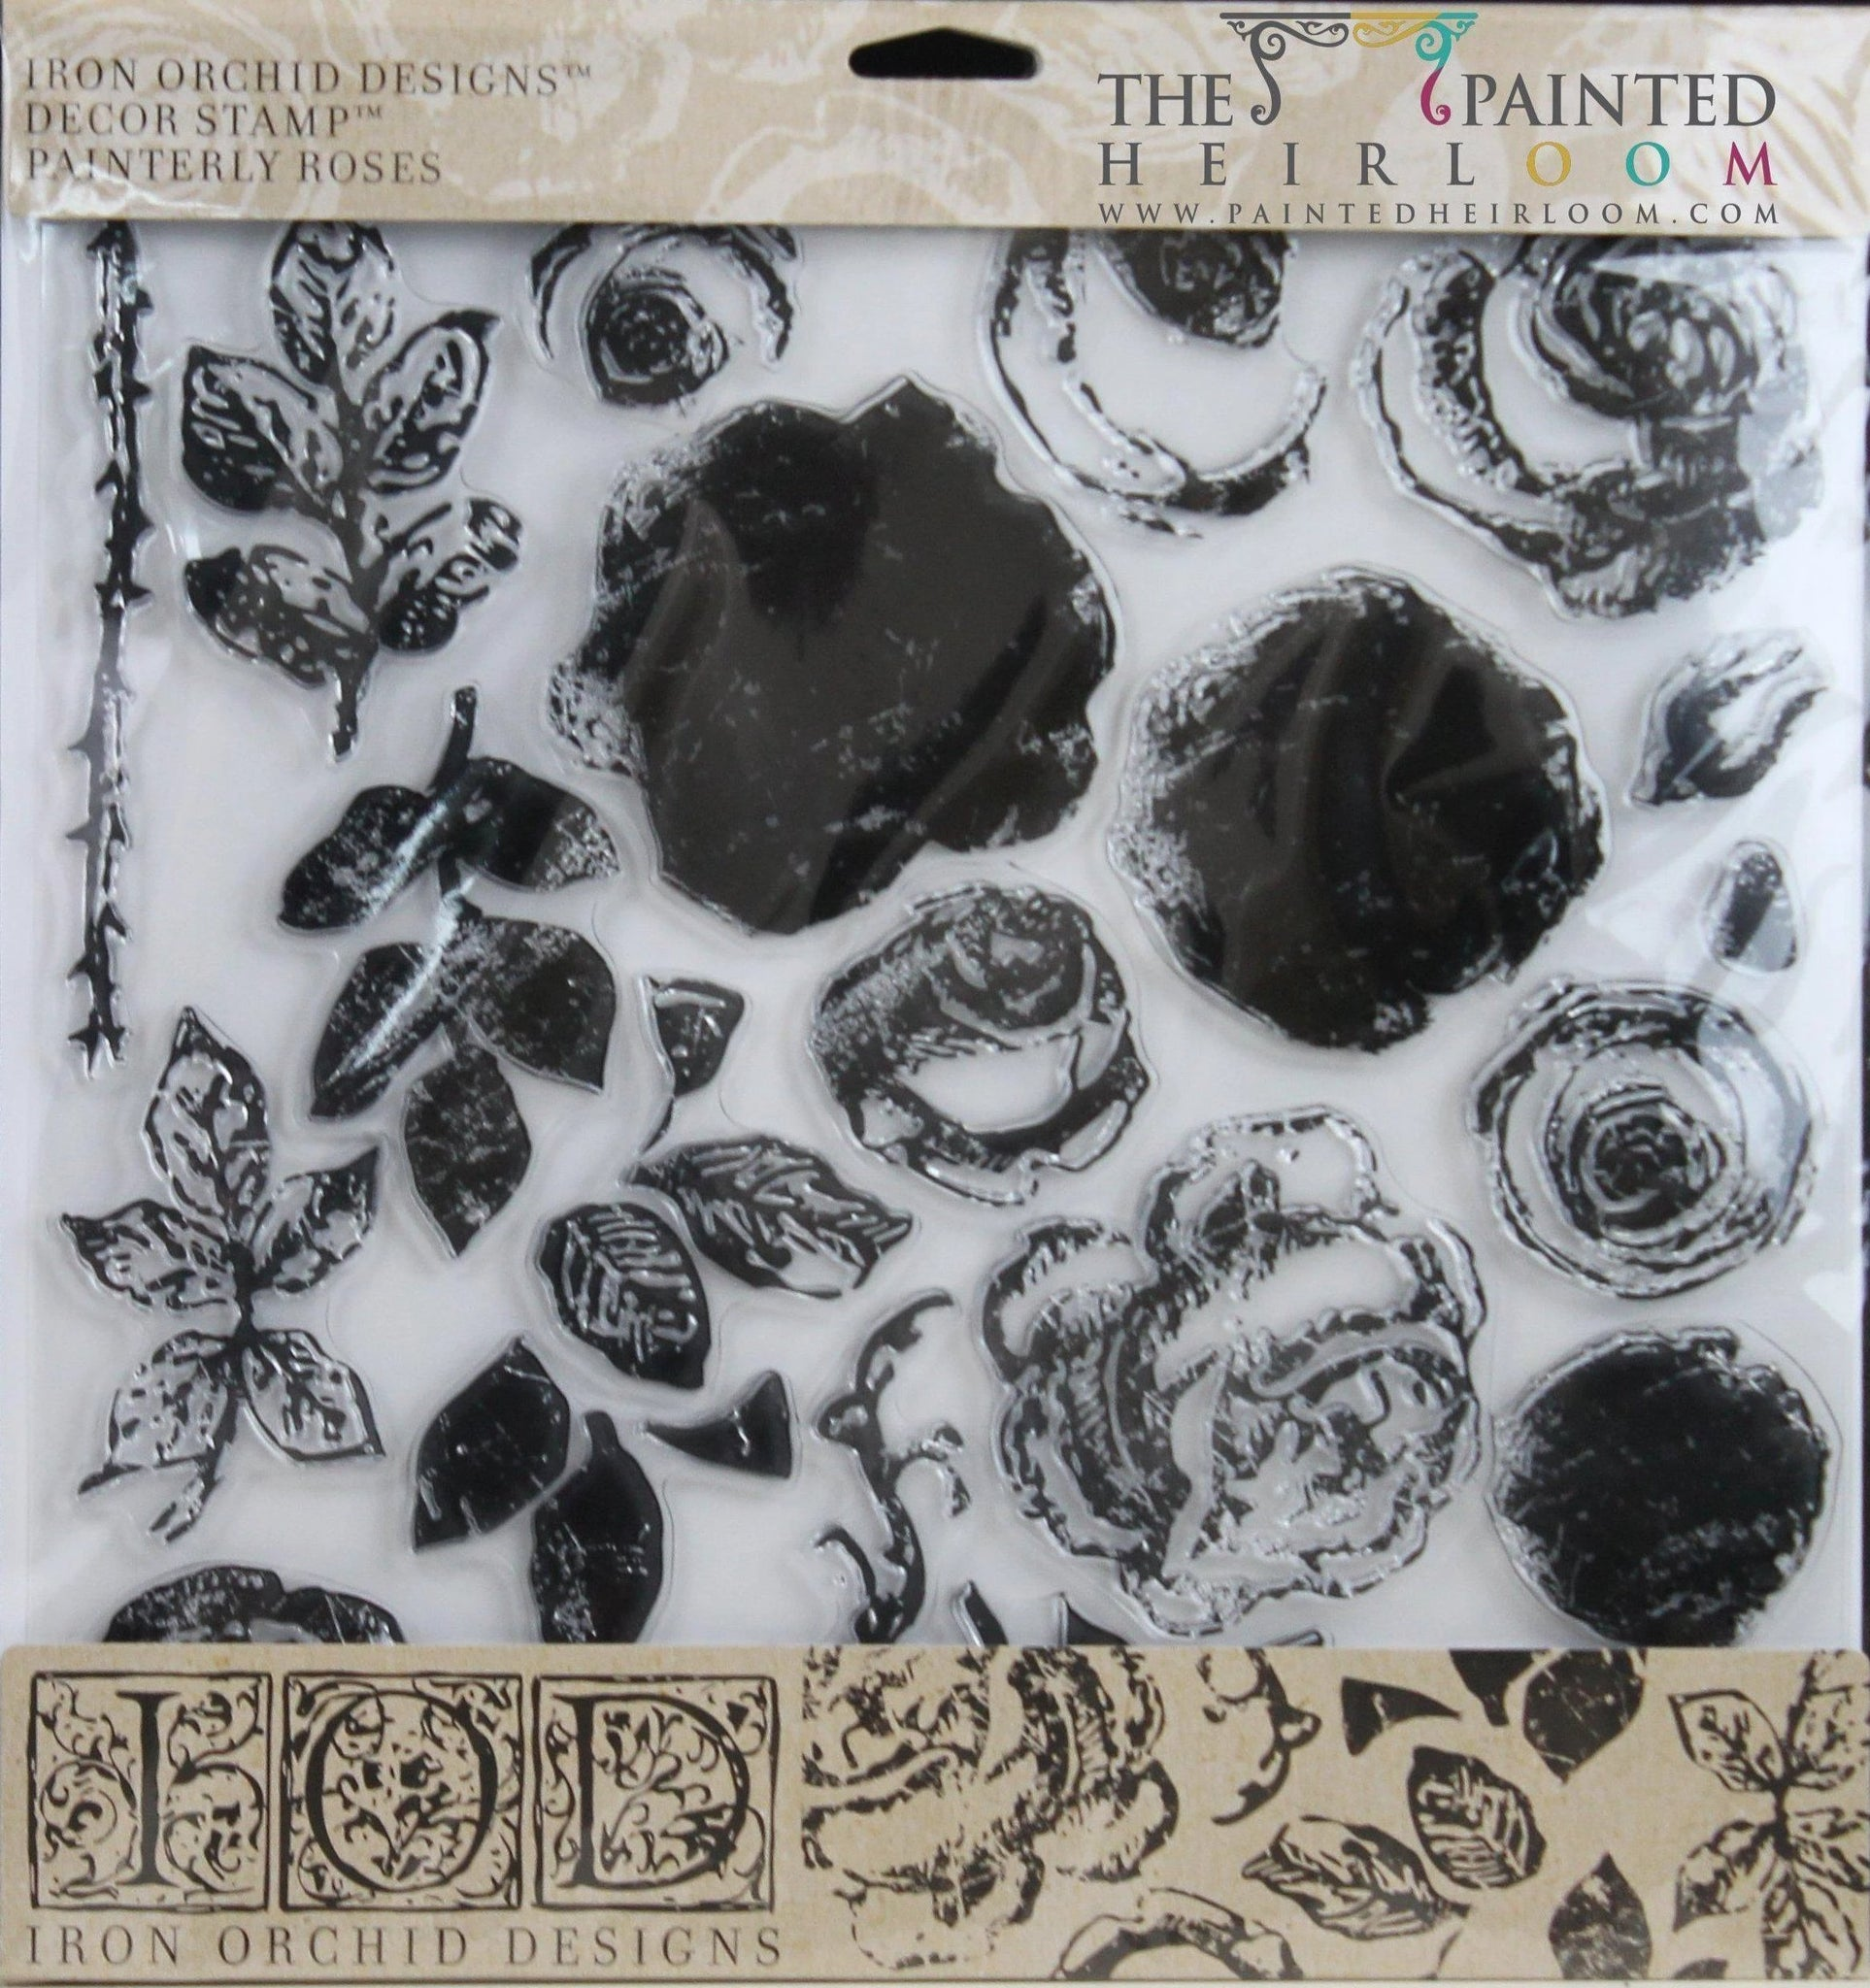 IOD Painterly Roses Decor Stamp by Iron Orchid Designs @ The Painted Heirloom